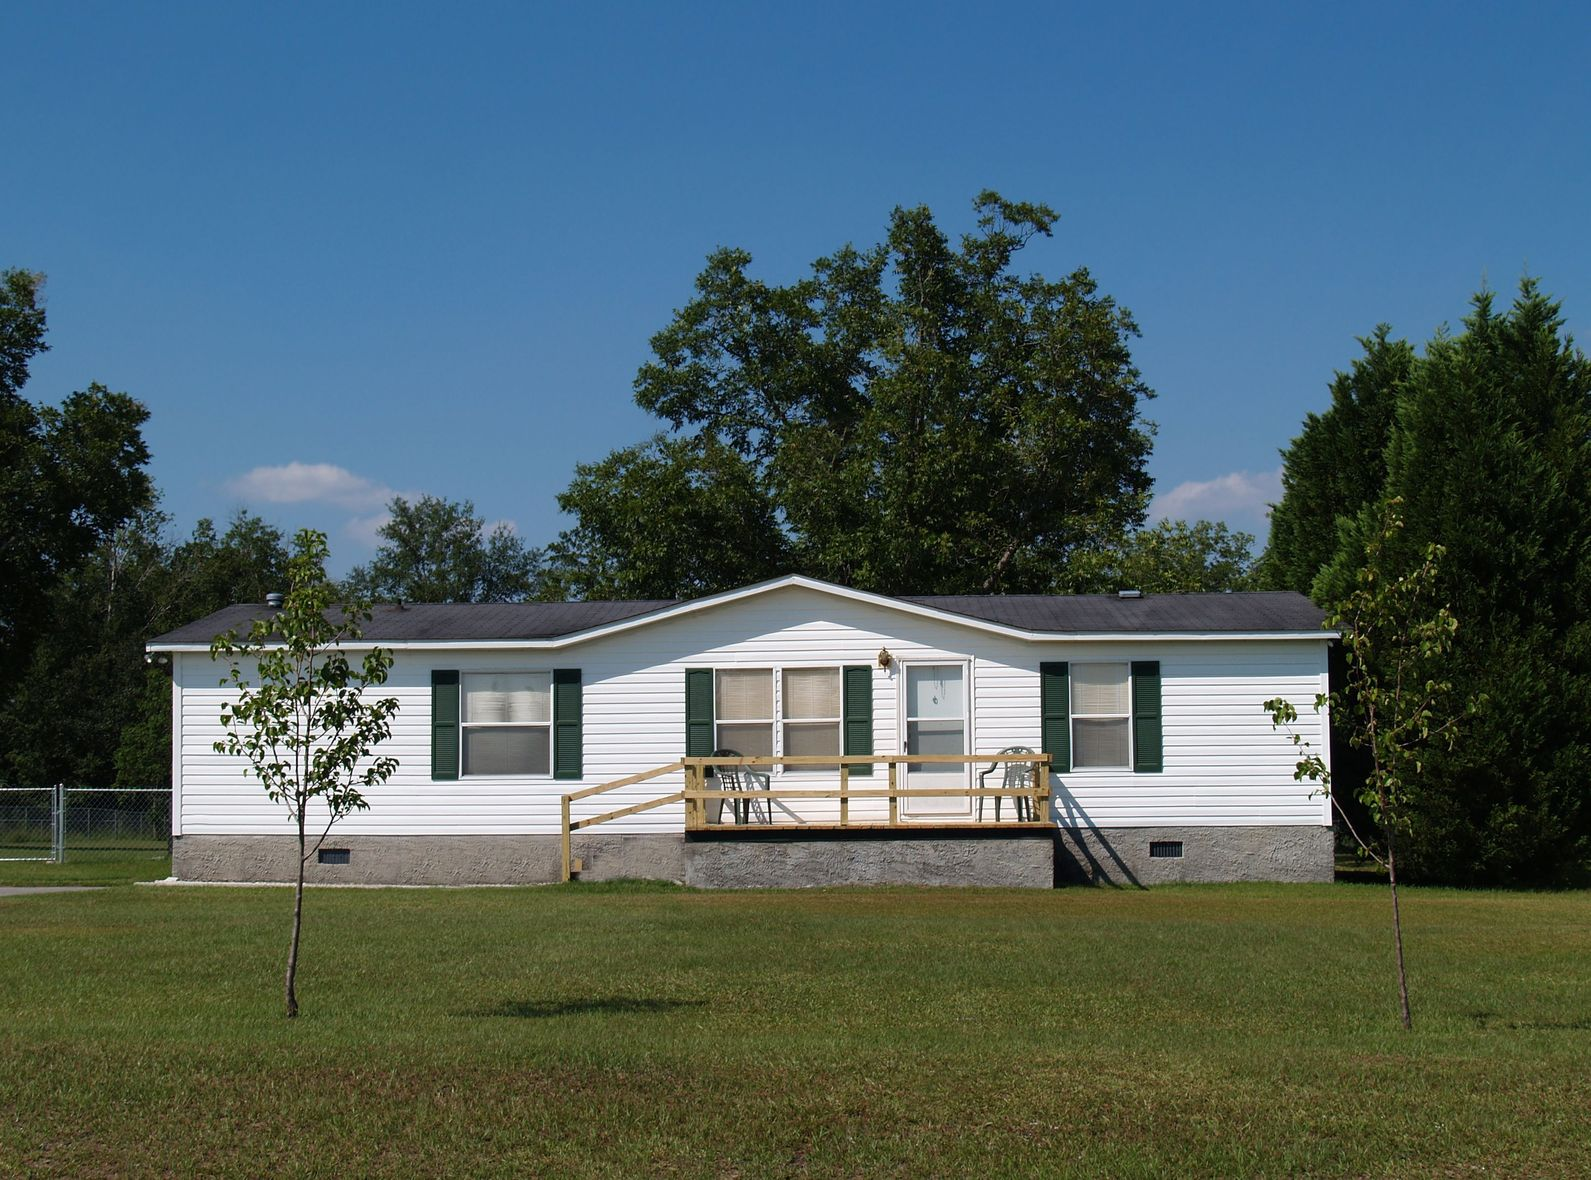 Kingwood, Atasocita, Porter, TX. Mobile Home Insurance